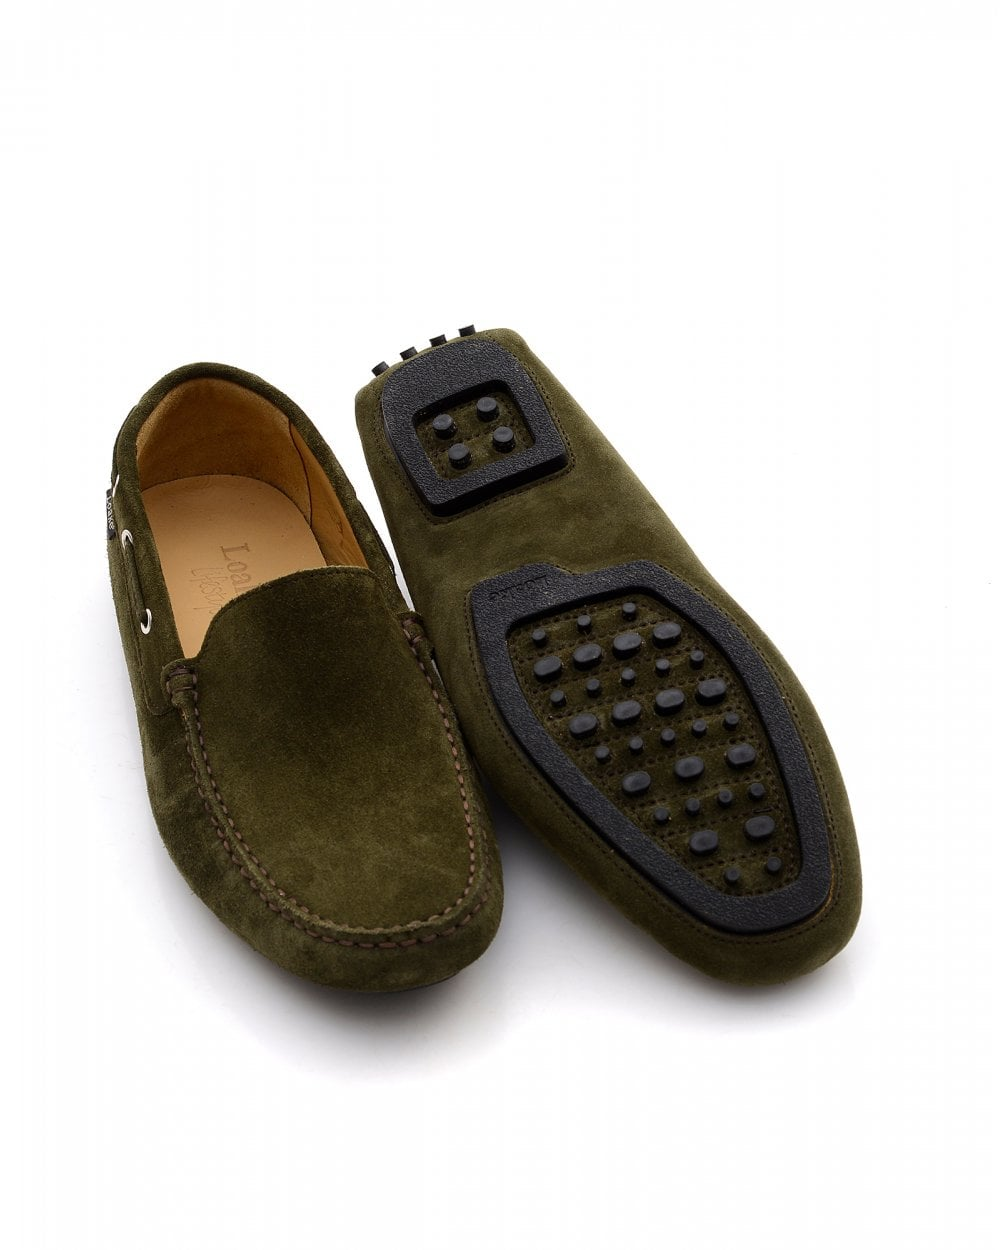 8ceac273 Loake Mens Donnington Loafers, Green Suede Driving Shoes